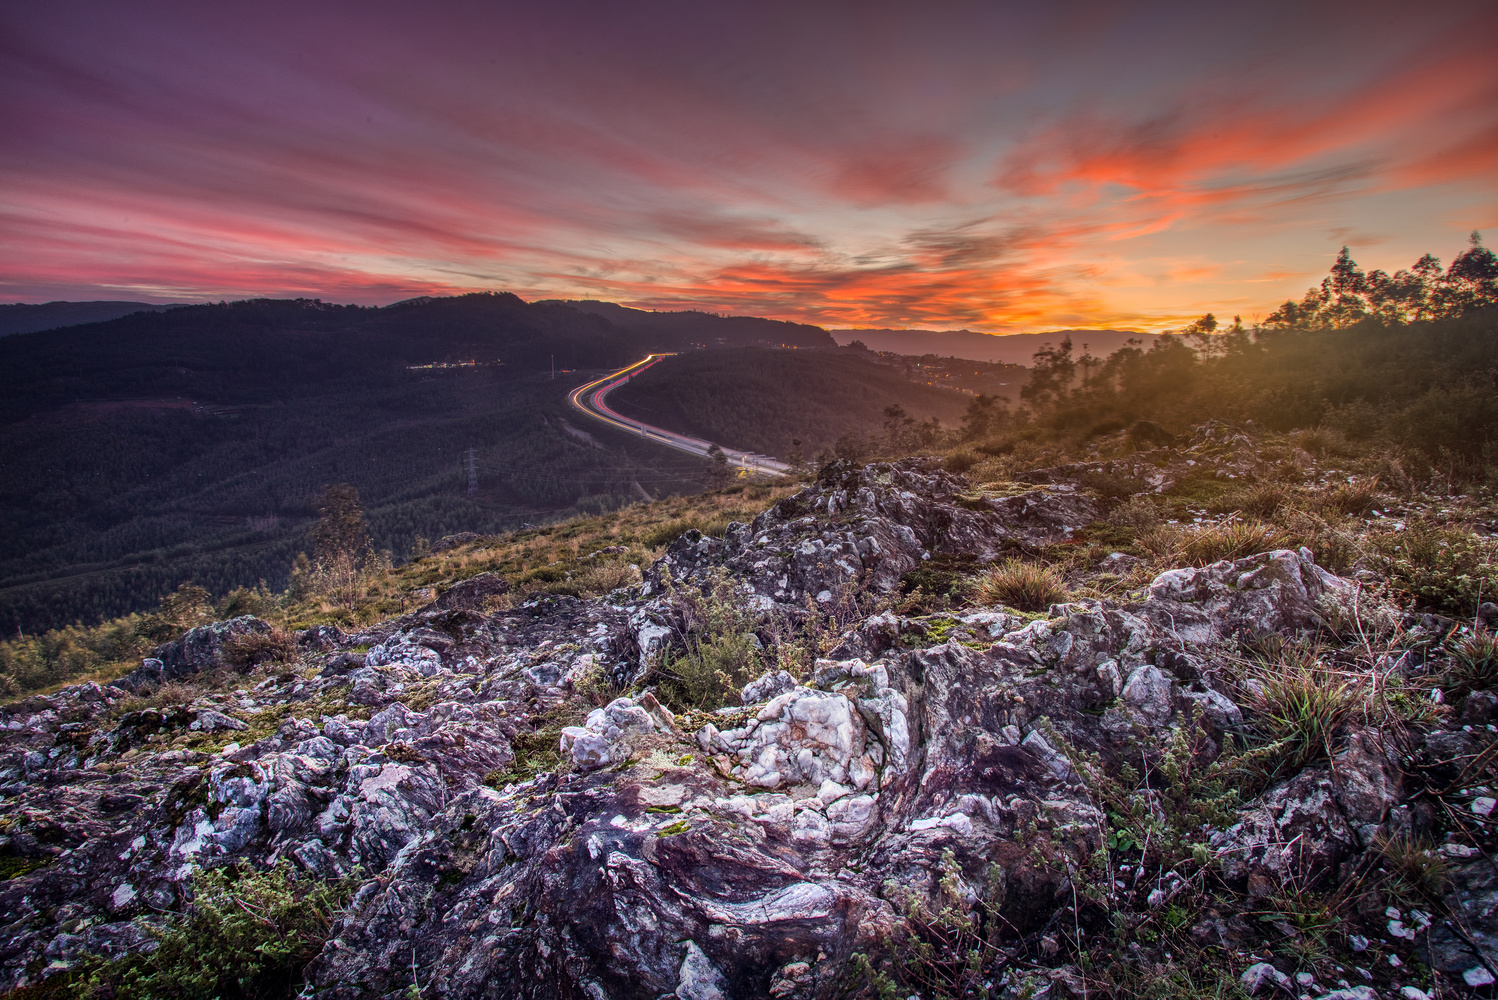 Sunrise over highway 25 by Tiago Marques